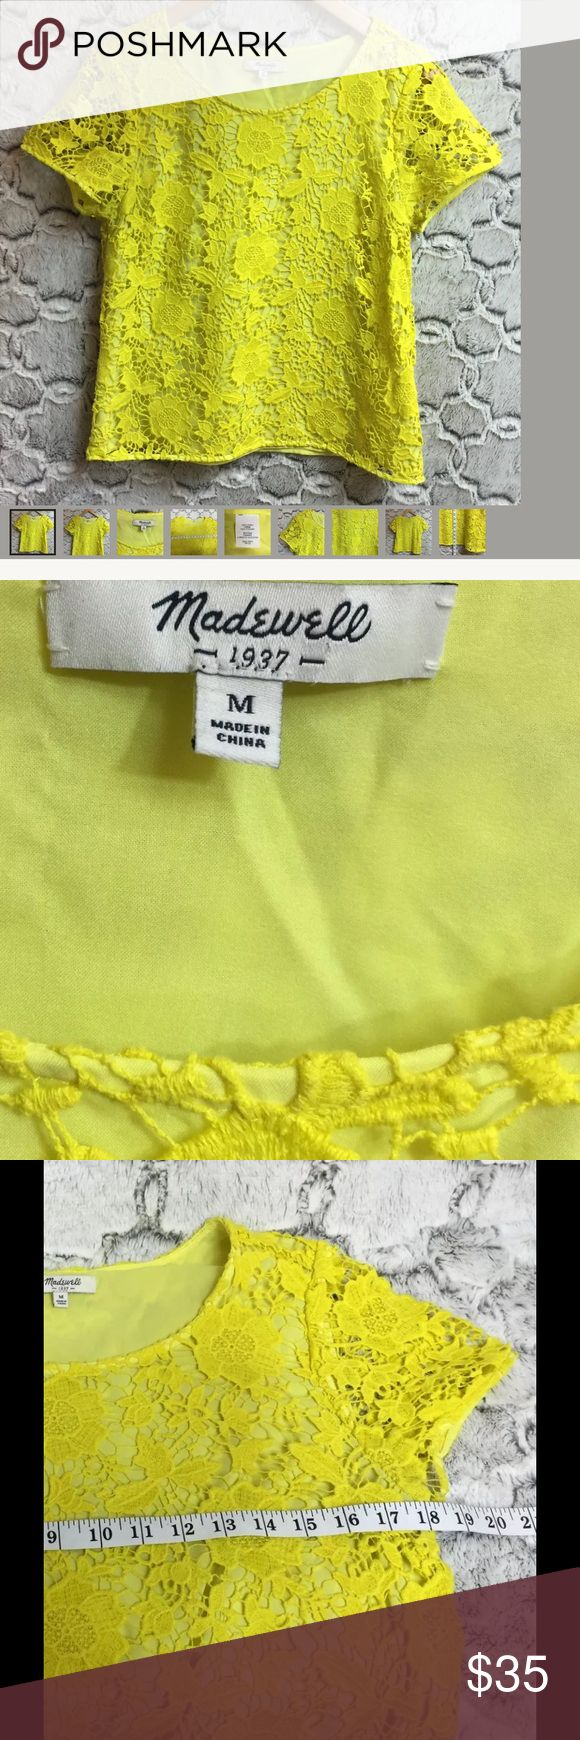 Madewell bright yellow lace crochet  shirt medium Size Medium, lined, Size Medium see pics for measurements Madewell Tops Blouses